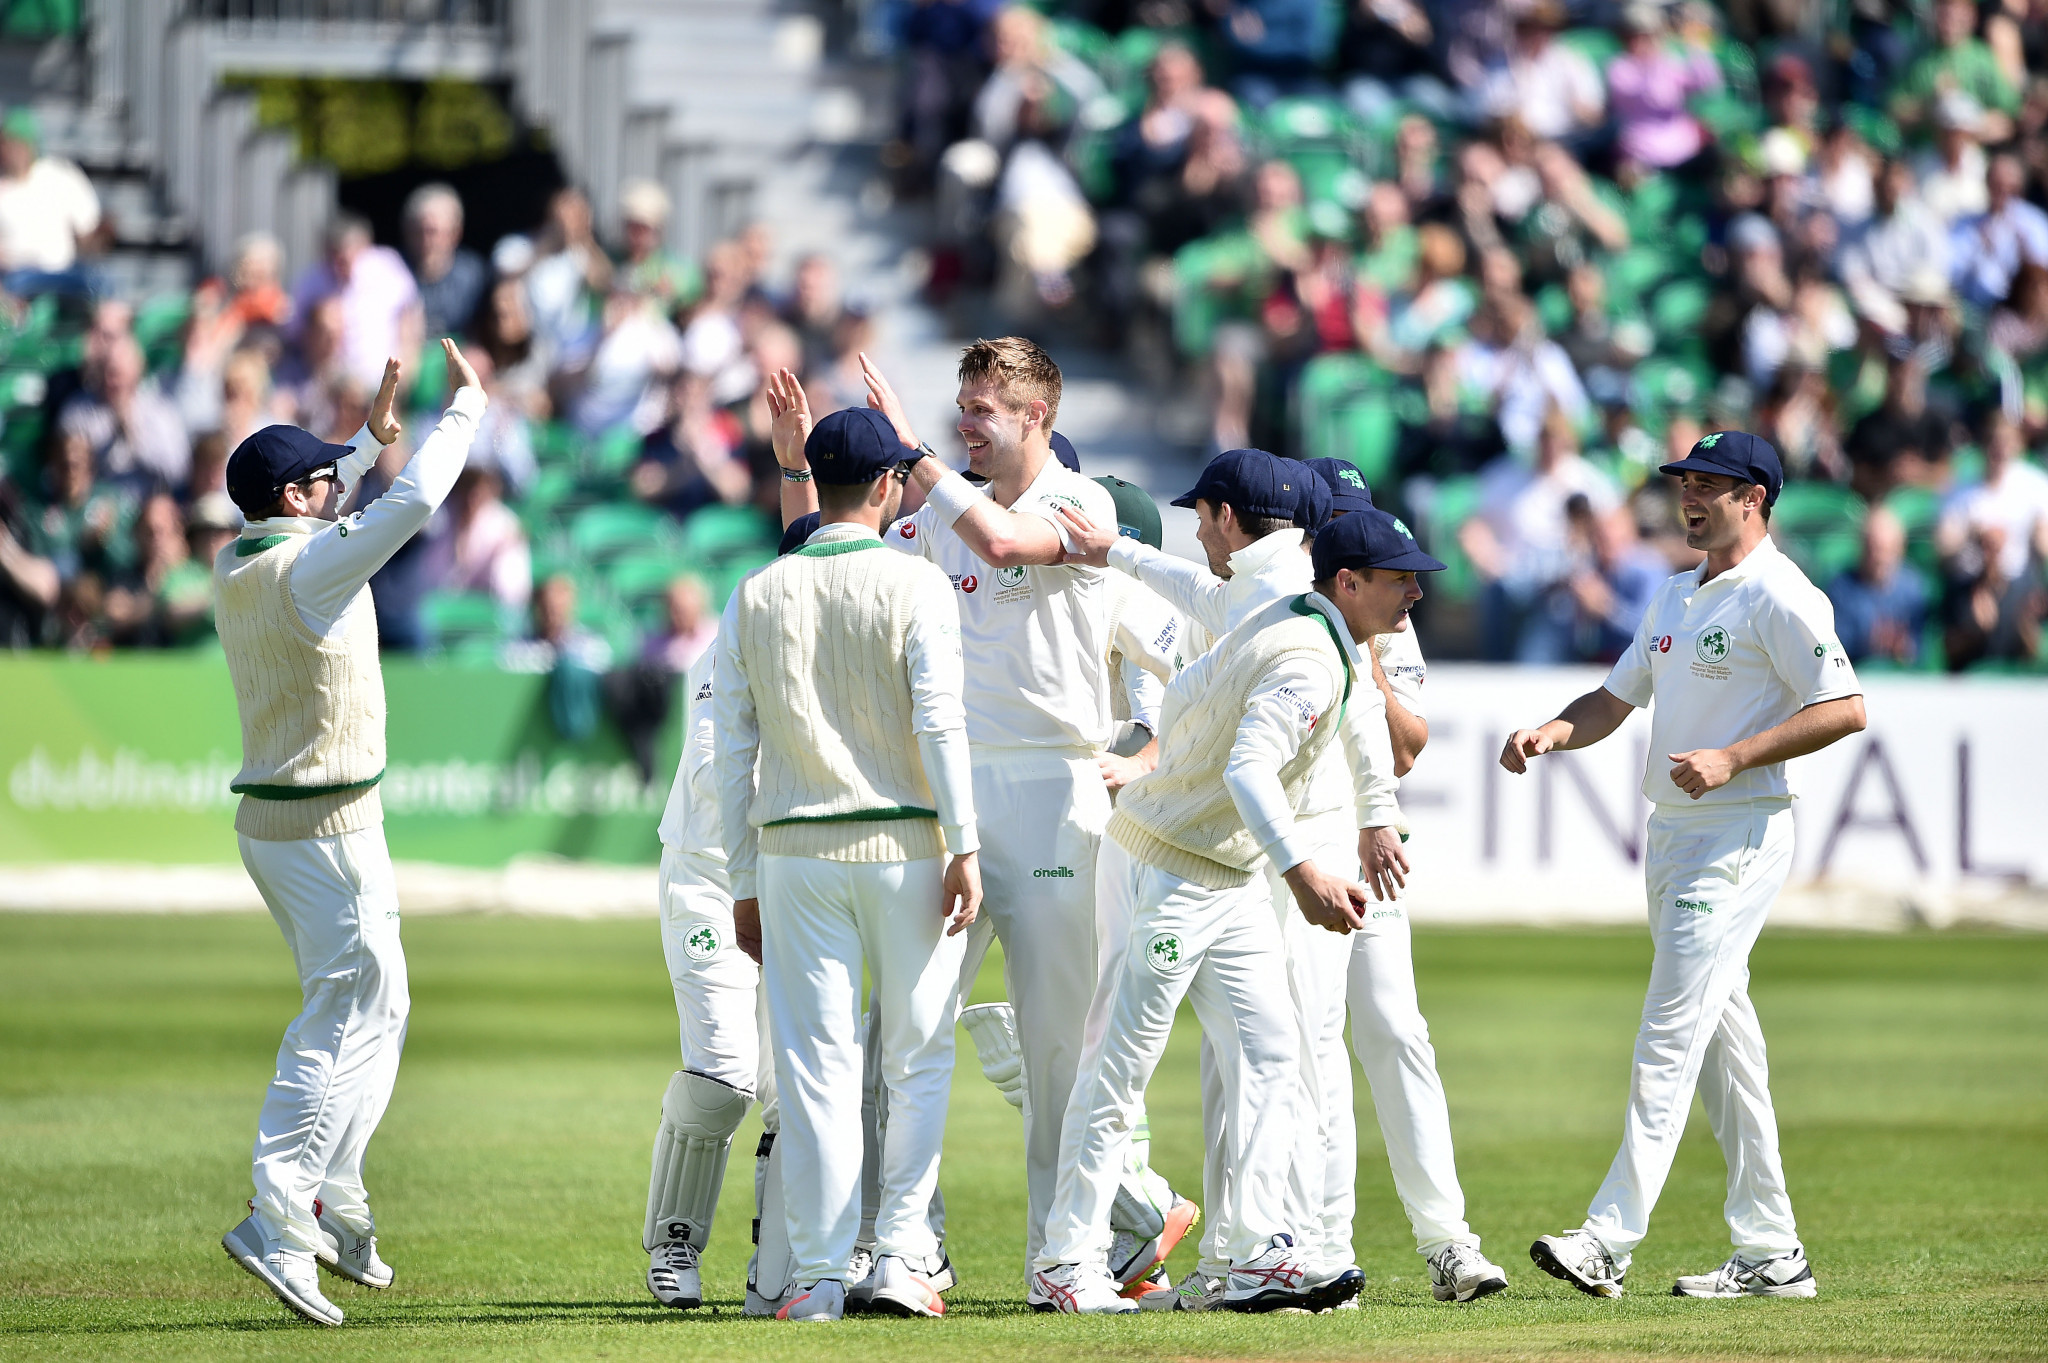 Ireland made a promising start to their Test debut as Pakistan were put under considerable pressure before recovering to reach the close at 268-6 ©Getty Images